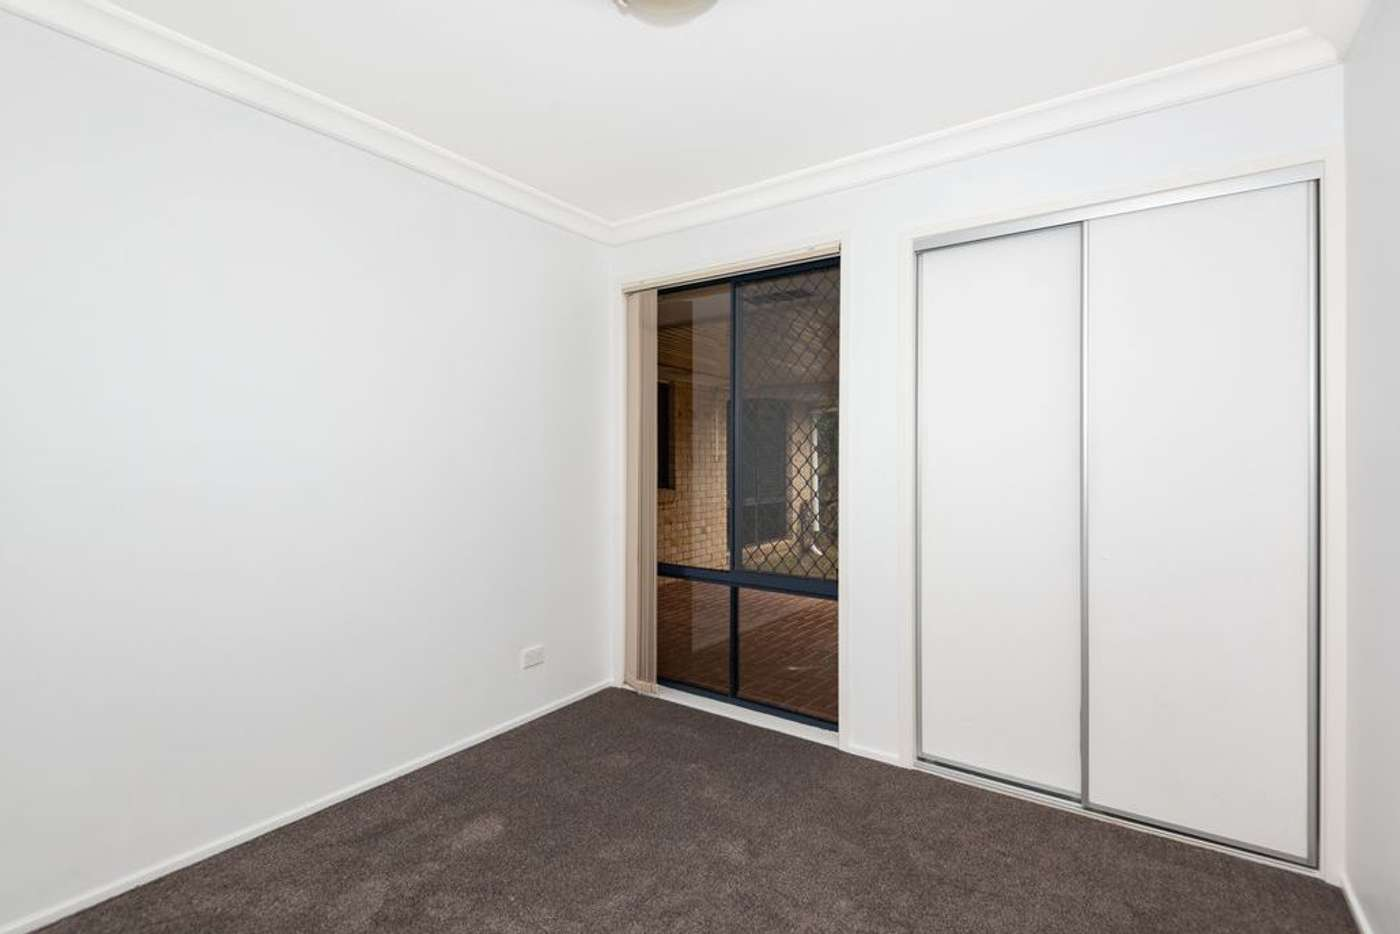 Sixth view of Homely house listing, 27 Ochre Crescent, Griffin QLD 4503